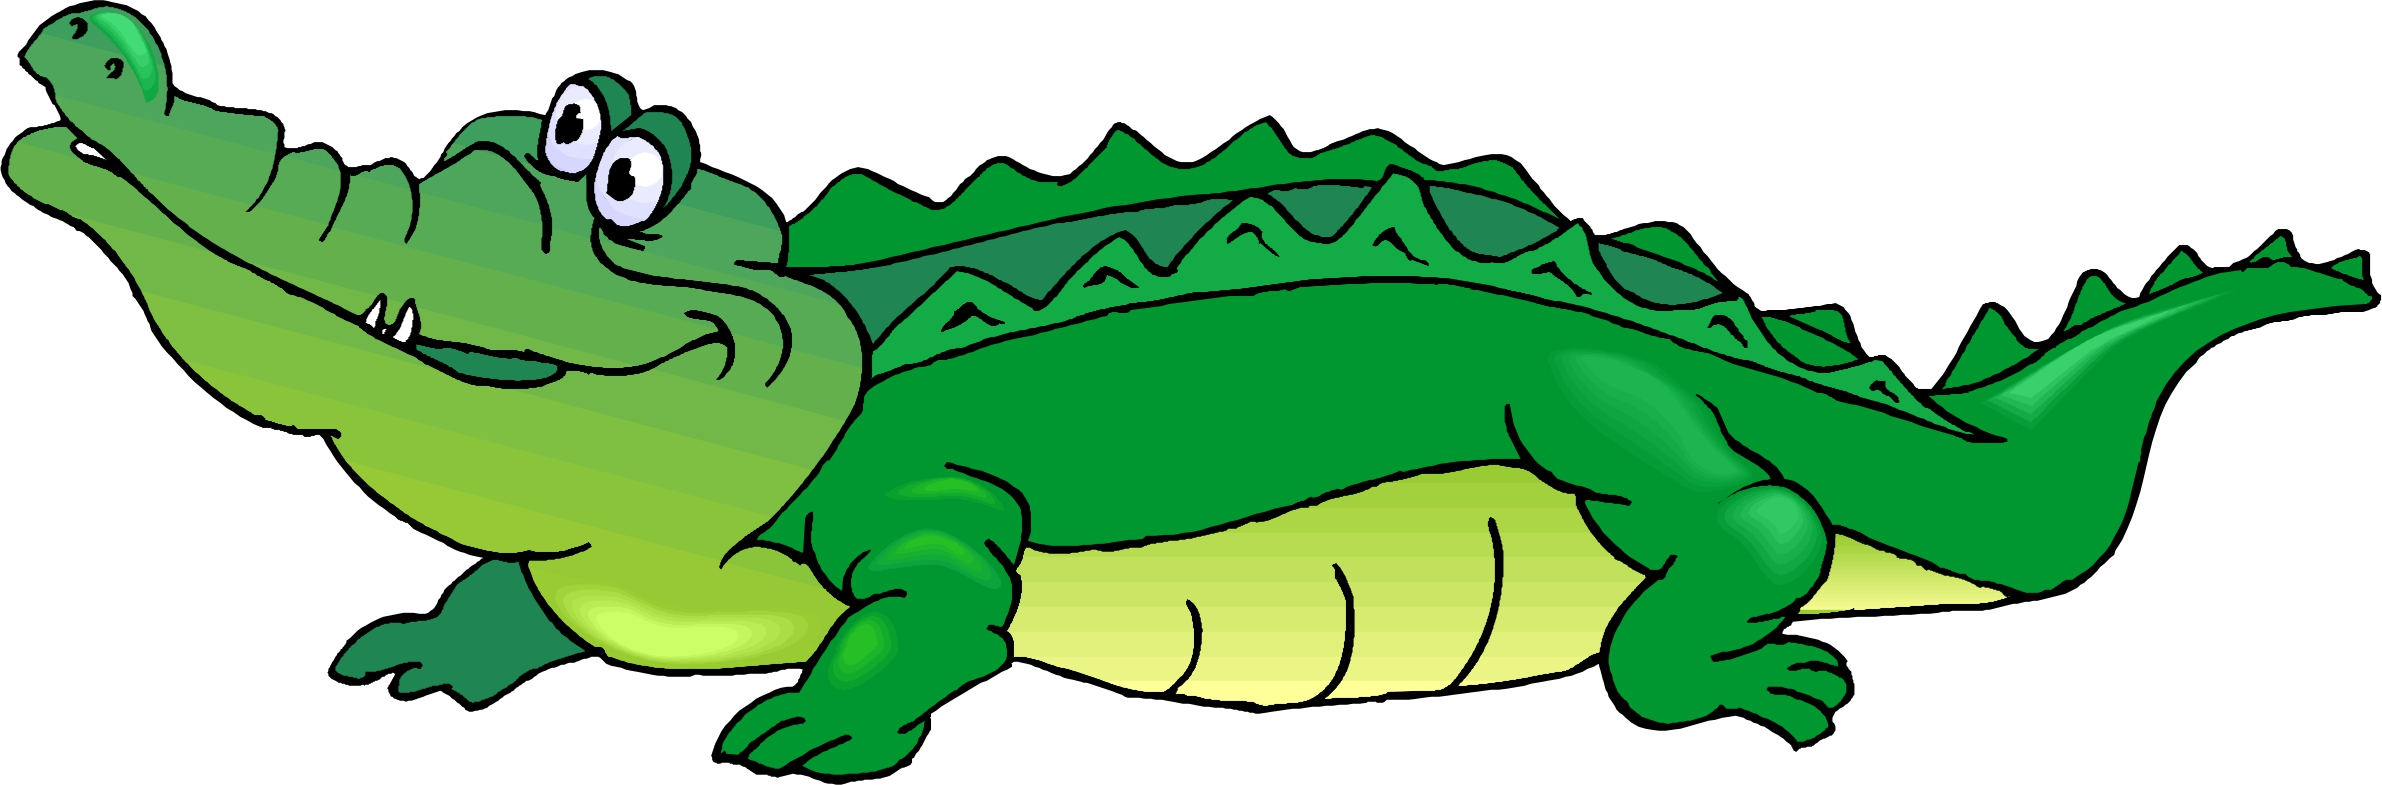 Alligator clipart m an A3d307e Search Alligator png Pictures